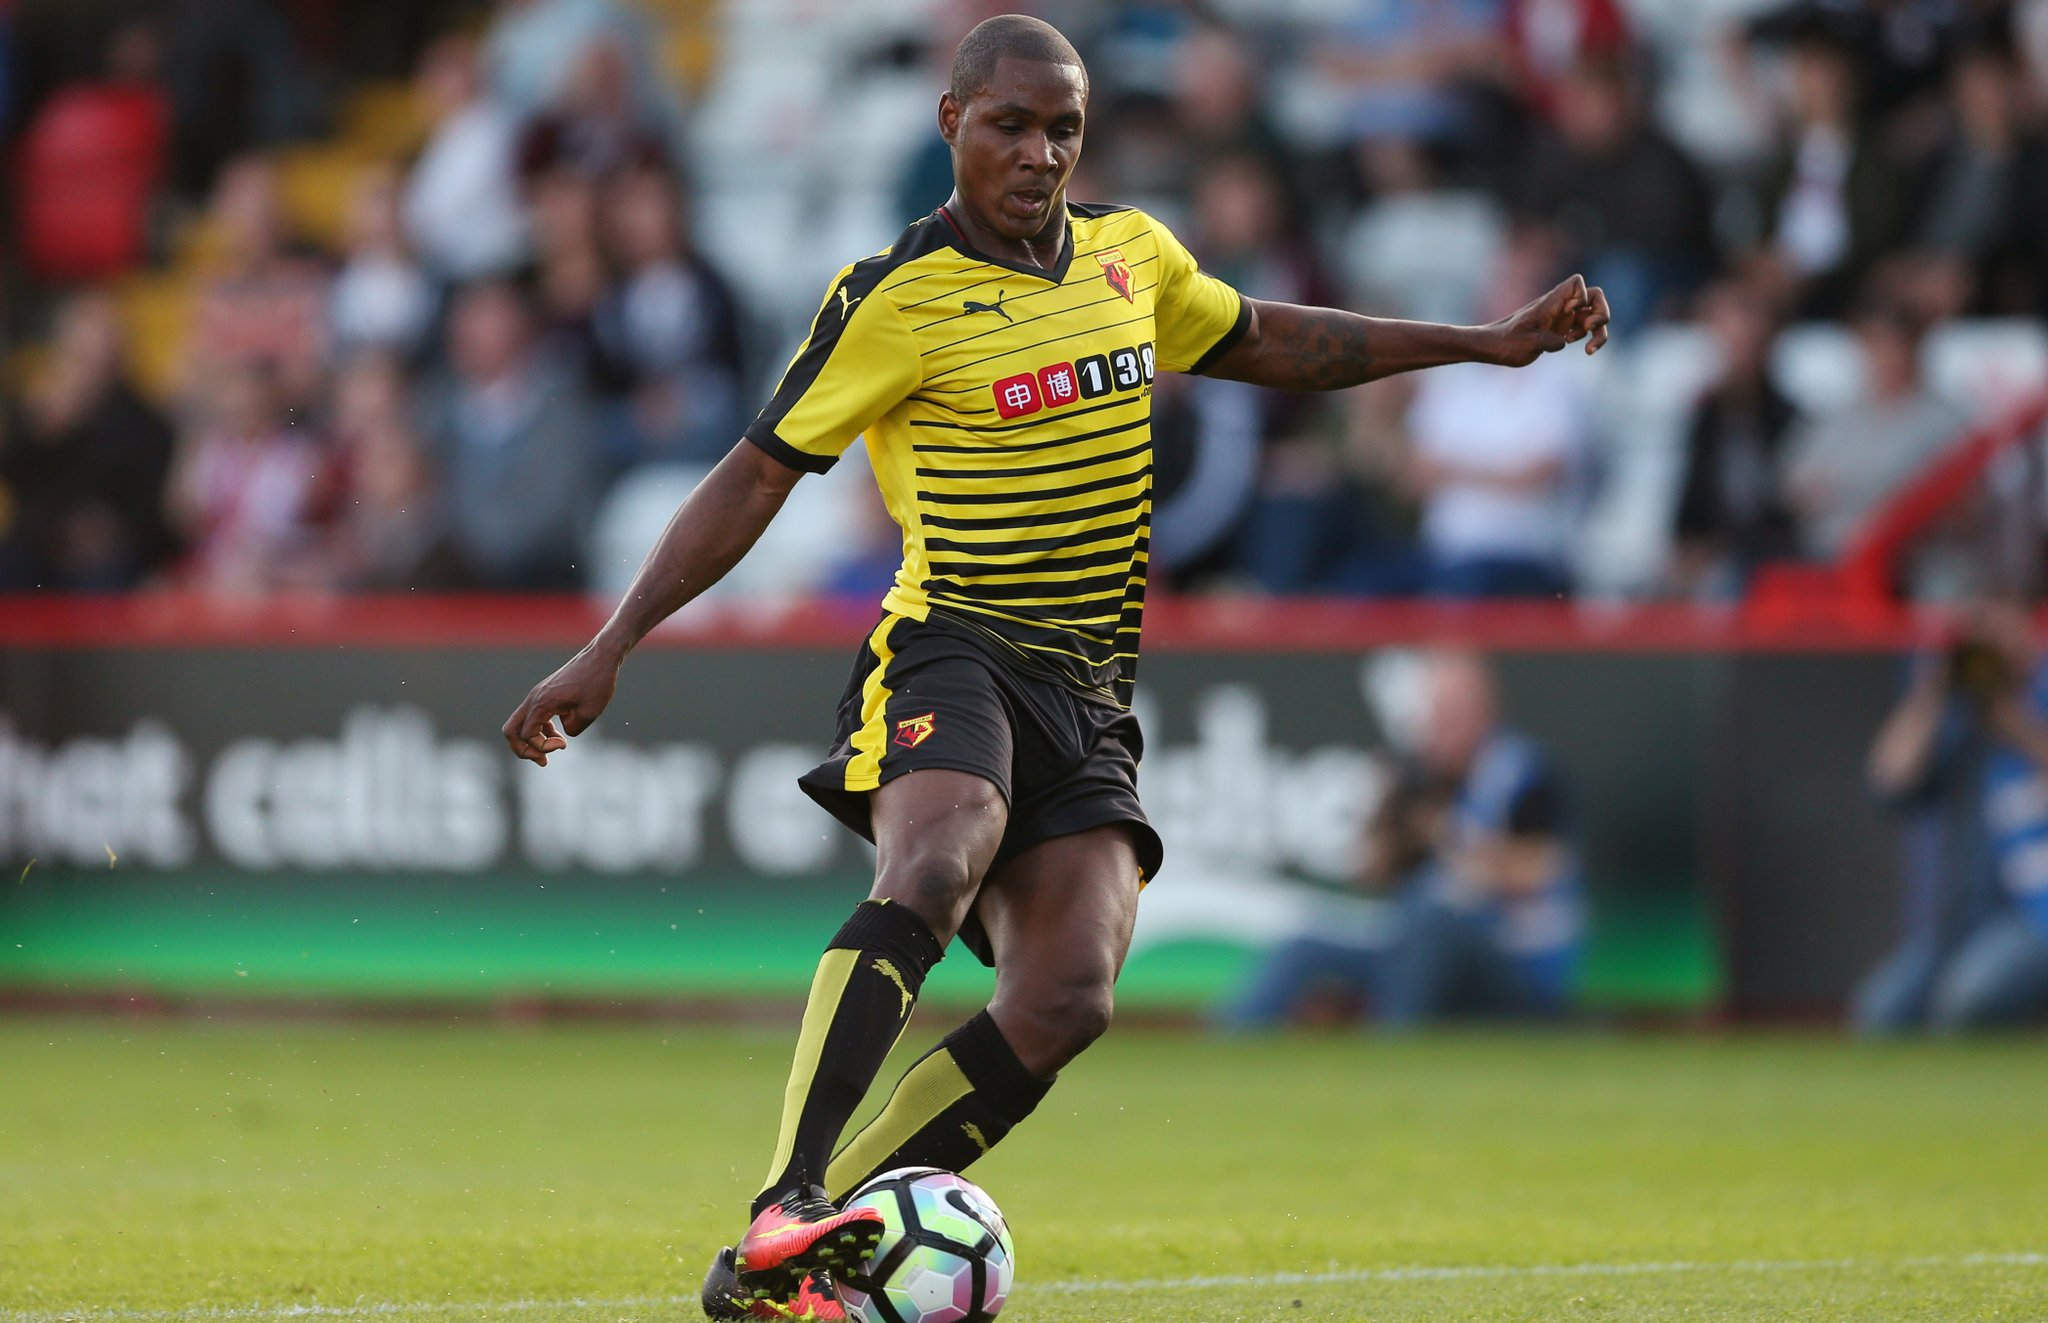 Ighalo Concerned About Helping Watford Win Games, Not Ending Goal Drought